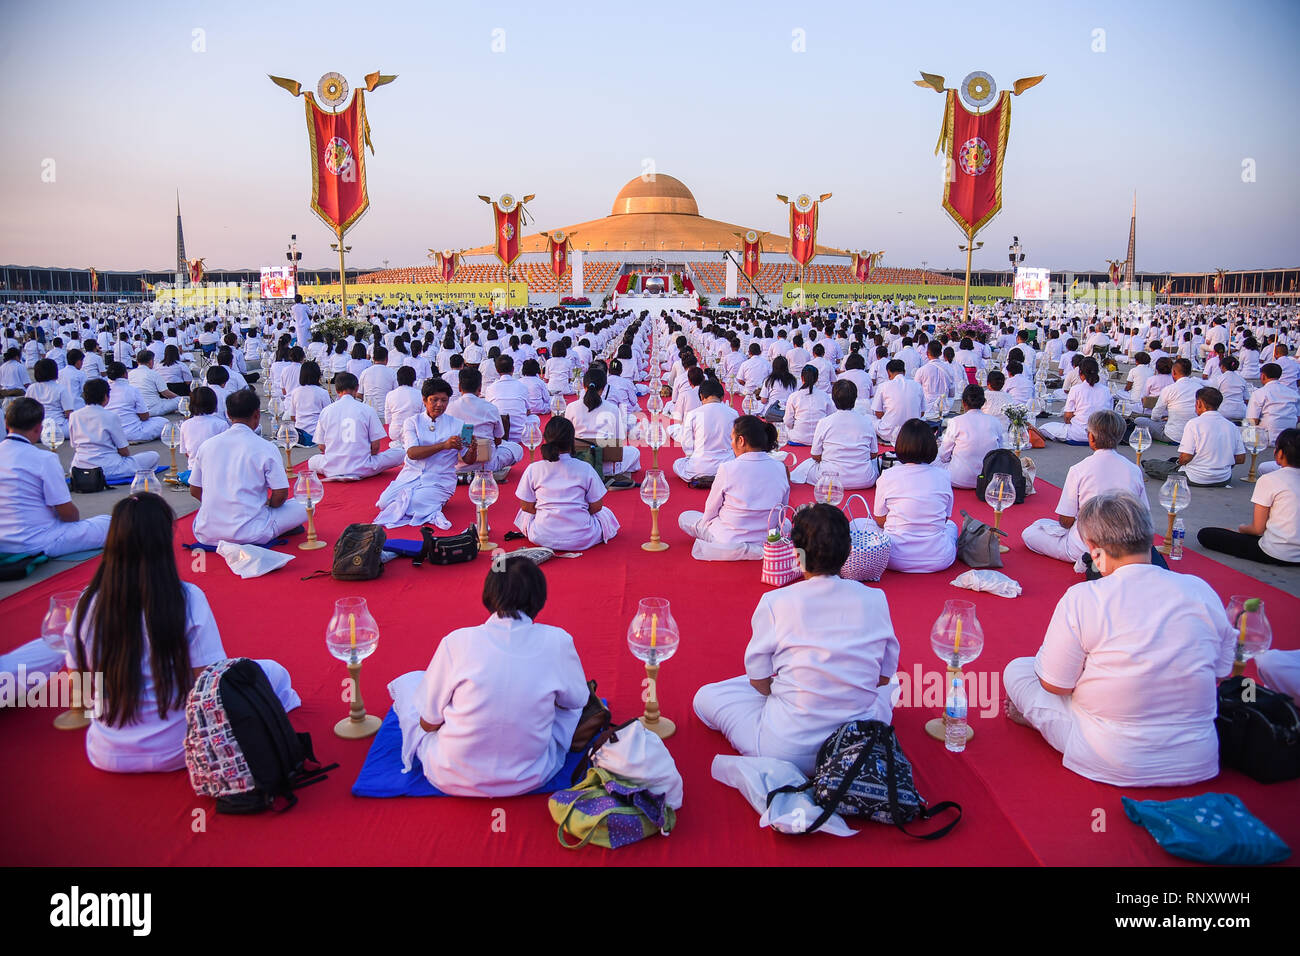 Wat Phra Dhammakaya Stock Photos Wat Phra Dhammakaya Stock Images